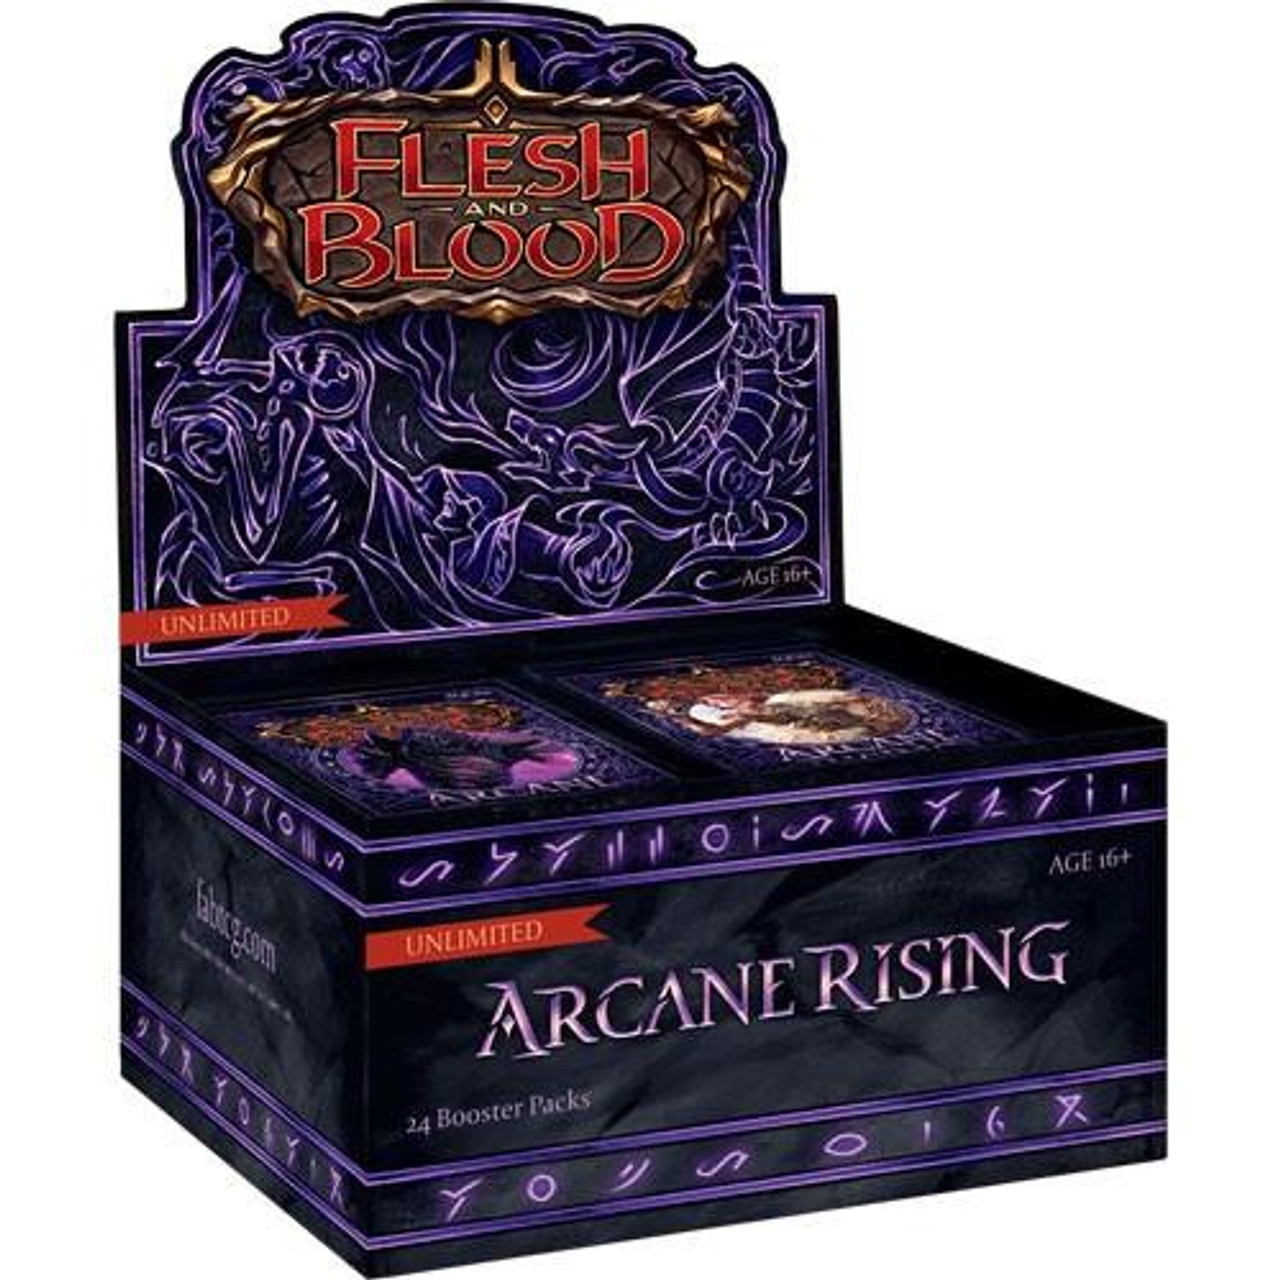 Flesh and Blood - Arcane Rising Booster Box - Unlimited